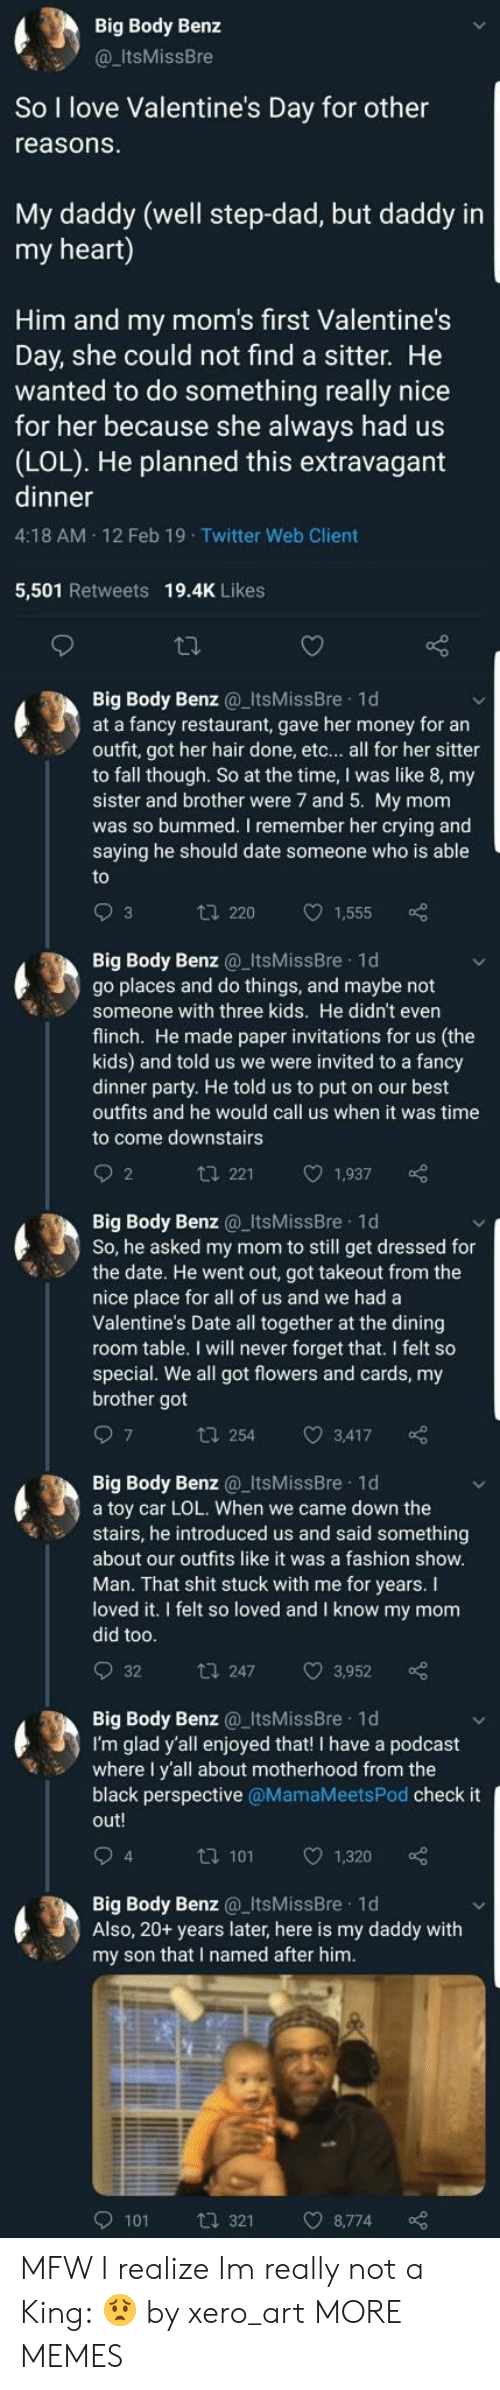 invitations: Big Body Benz  @ItsMissBre  So I love Valentine's Day for other  reasons  My daddy (well step-dad, but daddy in  my heart)  Him and my mom's first Valentine's  Day, she could not find a sitter. He  wanted to do something really nice  for her because she always had us  (LOL). He planned this extravagant  dinner  4:18 AM 12 Feb 19 Twitter Web Client  5,501 Retweets 19.4K Likes  Big Body Benz ItsMissBre 1d  at a fancy restaurant, gave her money for an  outfit, got her hair done, etc... all for her sitter  to fall though. So at the time, I was like 8, my  sister and brother were 7 and 5. My mom  was so bummed. I remember her crying and  saying he should date someone who is able  t 220 1,555  Big Body Benz ItsMissBre 1d  go places and do things, and maybe not  Someone with three kids. He didn't even  flinch. He made paper invitations for us (the  kids) and told us we were invited to a fancy  dinner party. He told us to put on our best  outfits and he would call us when it was time  to come downstairs  2  t 221 1,937  Big Body Benz ItsMissBre 1d  So, he asked my mom to still get dressed for  the date. He went out, got takeout from the  nice place for all of us and we had a  Valentine's Date all together at the dining  room table. I will never forget that. I felt so  special. We all got flowers and cards, my  brother got  t 254 3,417  Big Body Benz@_ItsMissBre 1d  a toy car LOL. When we came down the  stairs, he introduced us and said something  about our outfits like it was a fashion show  Man. That shit stuck with me for years. I  loved it. I felt so loved and I know my mom  did too  t 247 3,952  Big Body Benz_ItsMissBre 1d  I'm glad y'all enjoyed that! I have a podcast  where I y'all about motherhood from the  black perspective @MamaMeetsPod check it  out!  4  ta 101 1  1,320  Big Body Benz_ItsMissBre 1d  Also, 20+ years later, here is my daddy with  my son that I named after hinm  9101  321  8,774 MFW I realize Im really not a King: 😟 by xero_art MORE MEMES